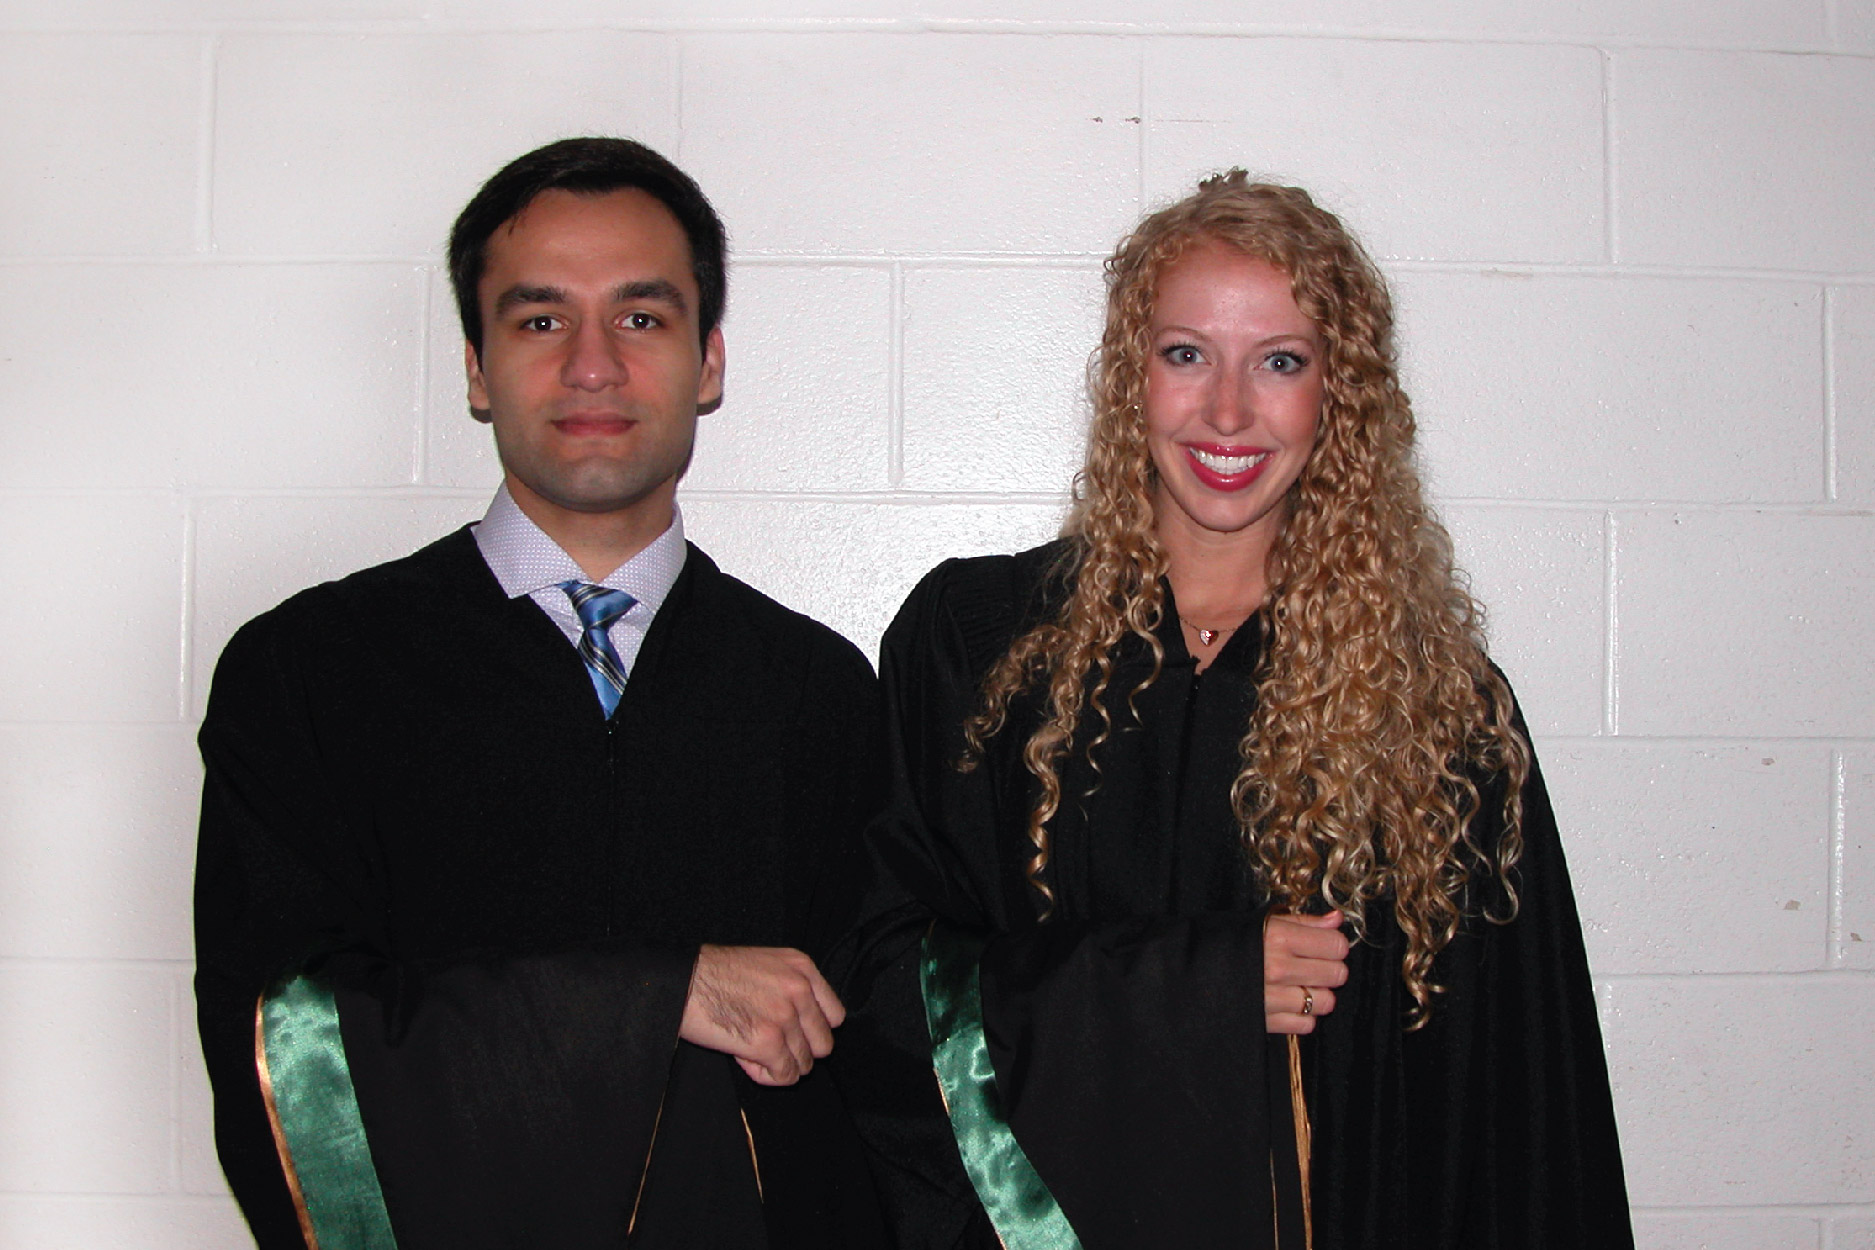 Student Awards at Spring Convocation